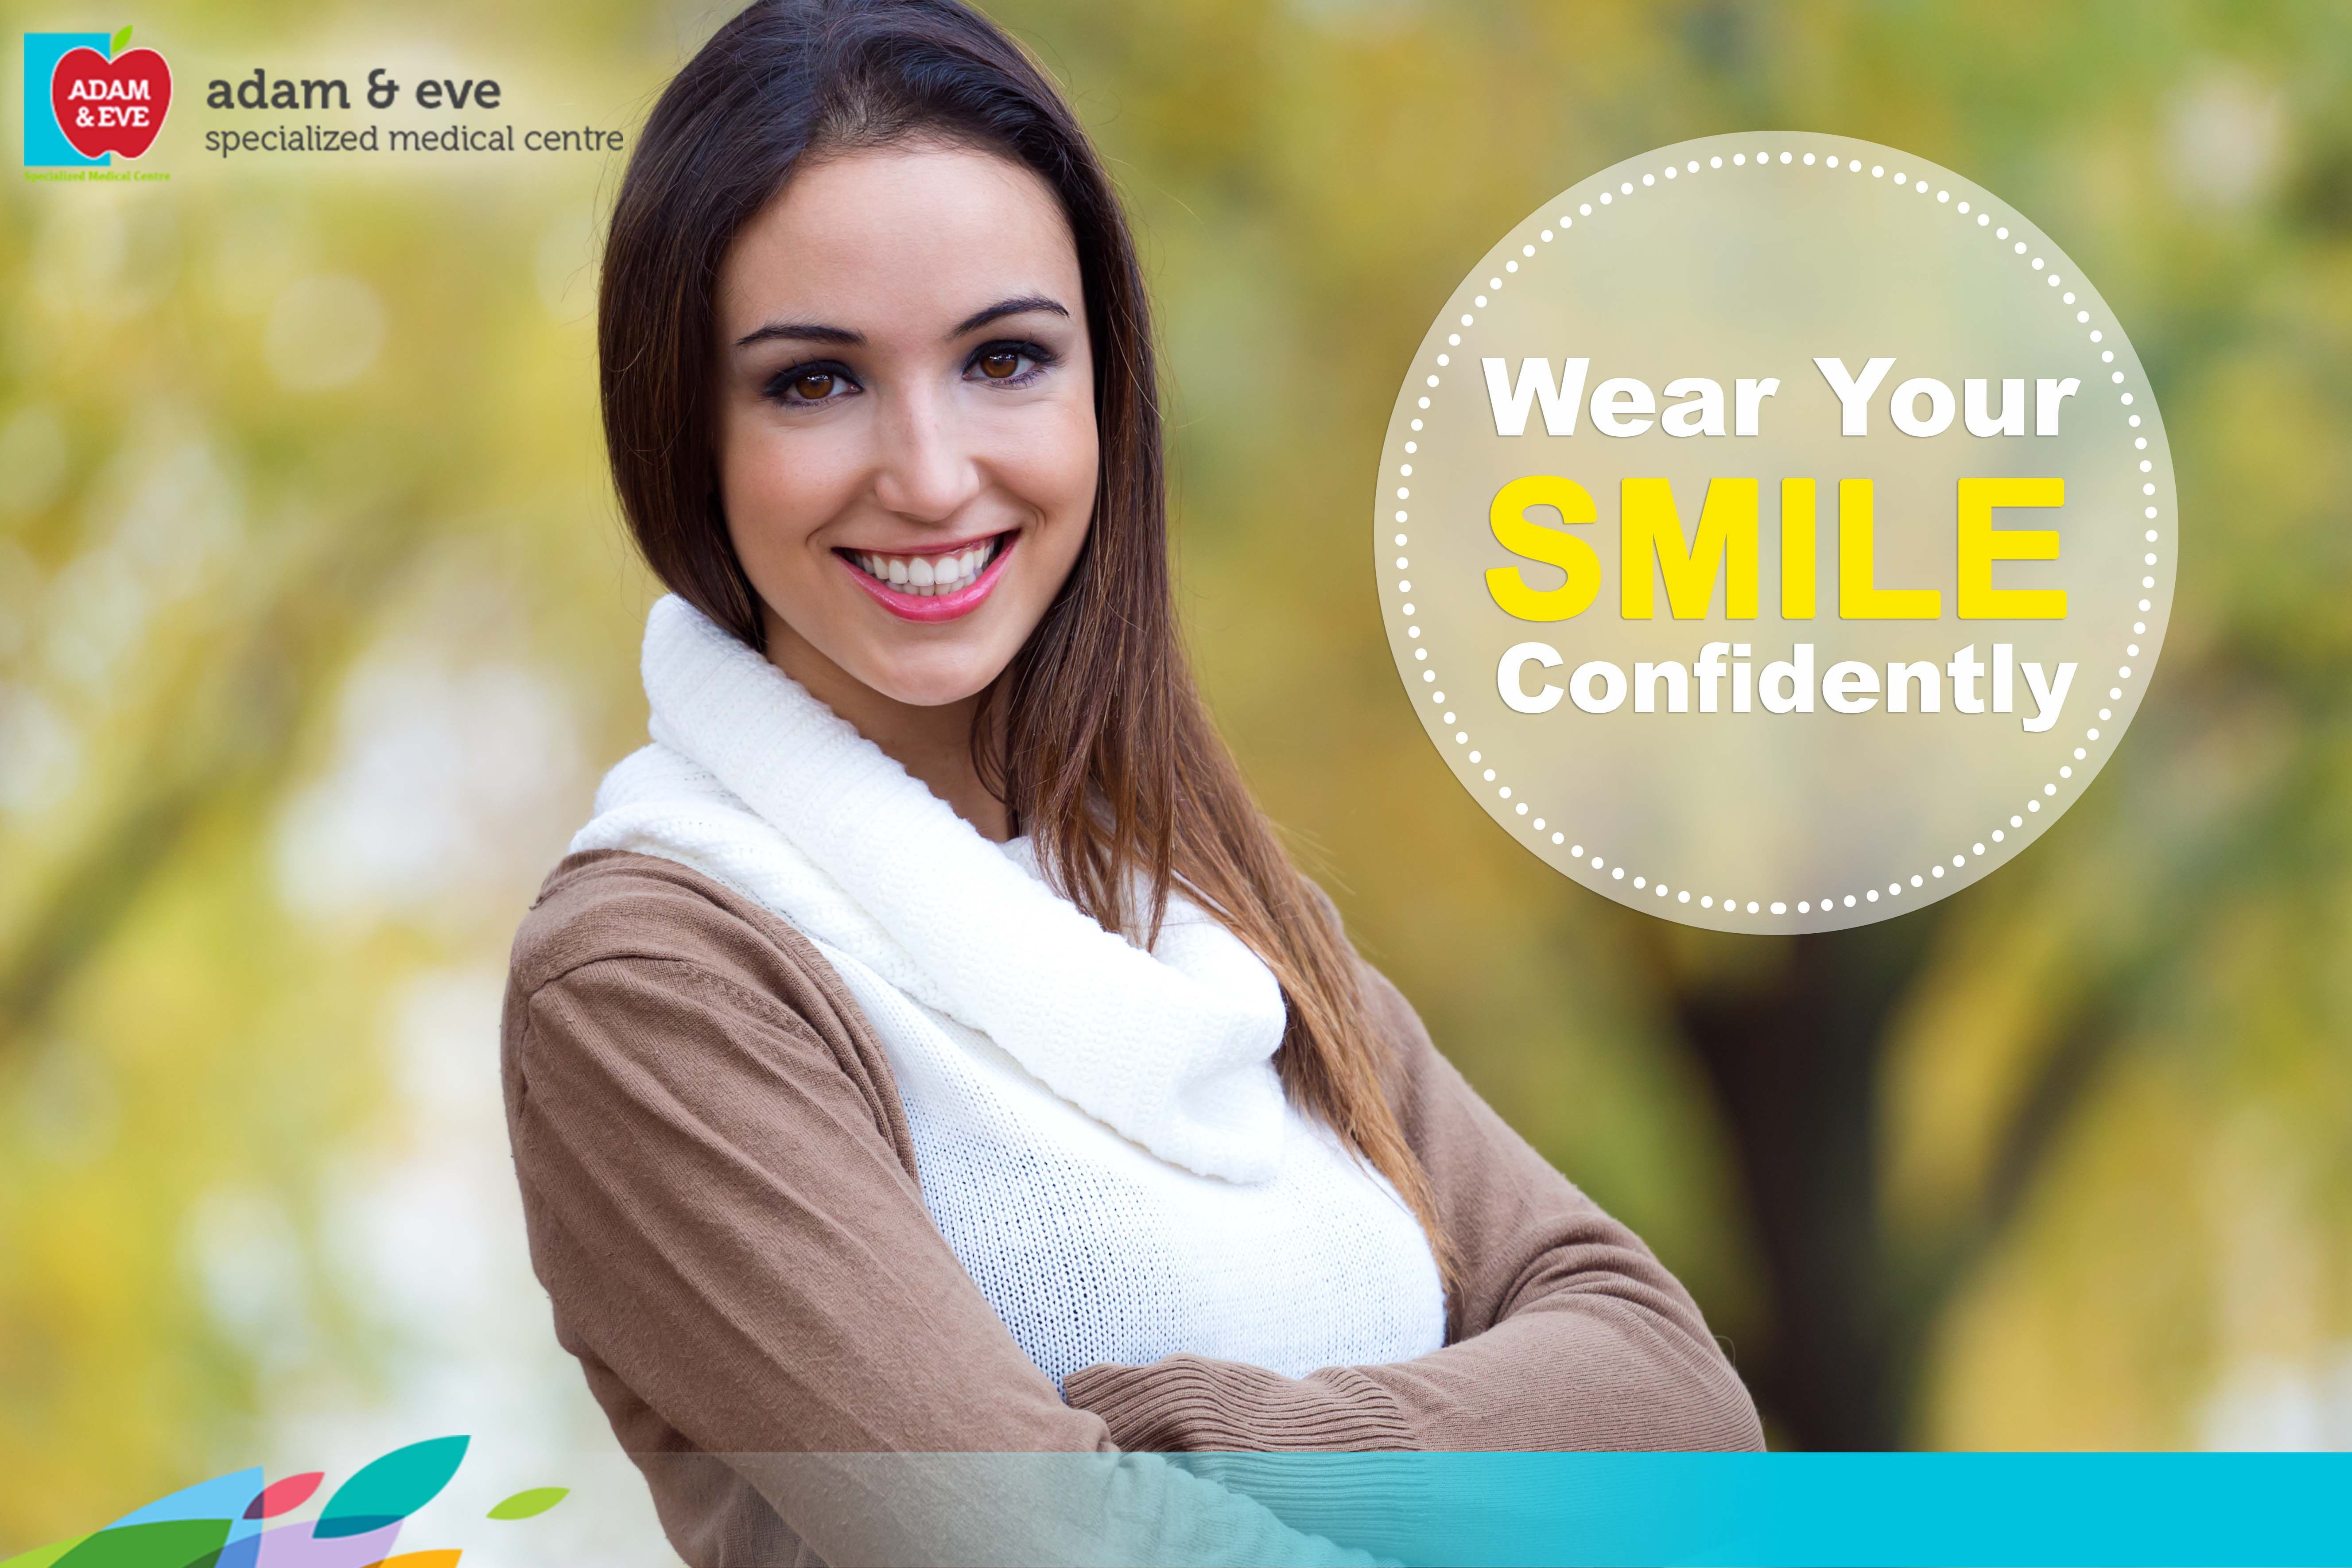 Pin by Adam & Eve Specialized Medical Centre UAE on Dental